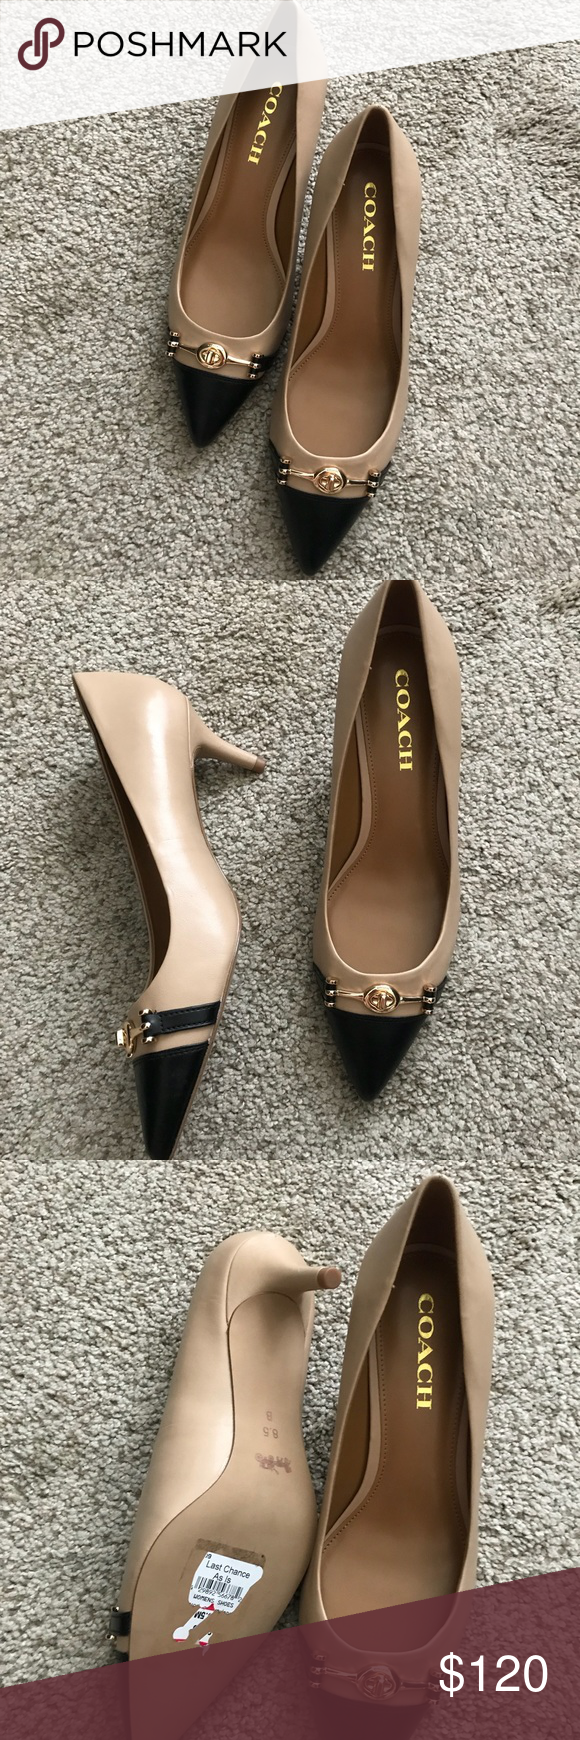 2bdf2ae4e0d Coach Lauri Silky Nappa Leather Kitten Heel Pump Details Sizing  True to  size. -